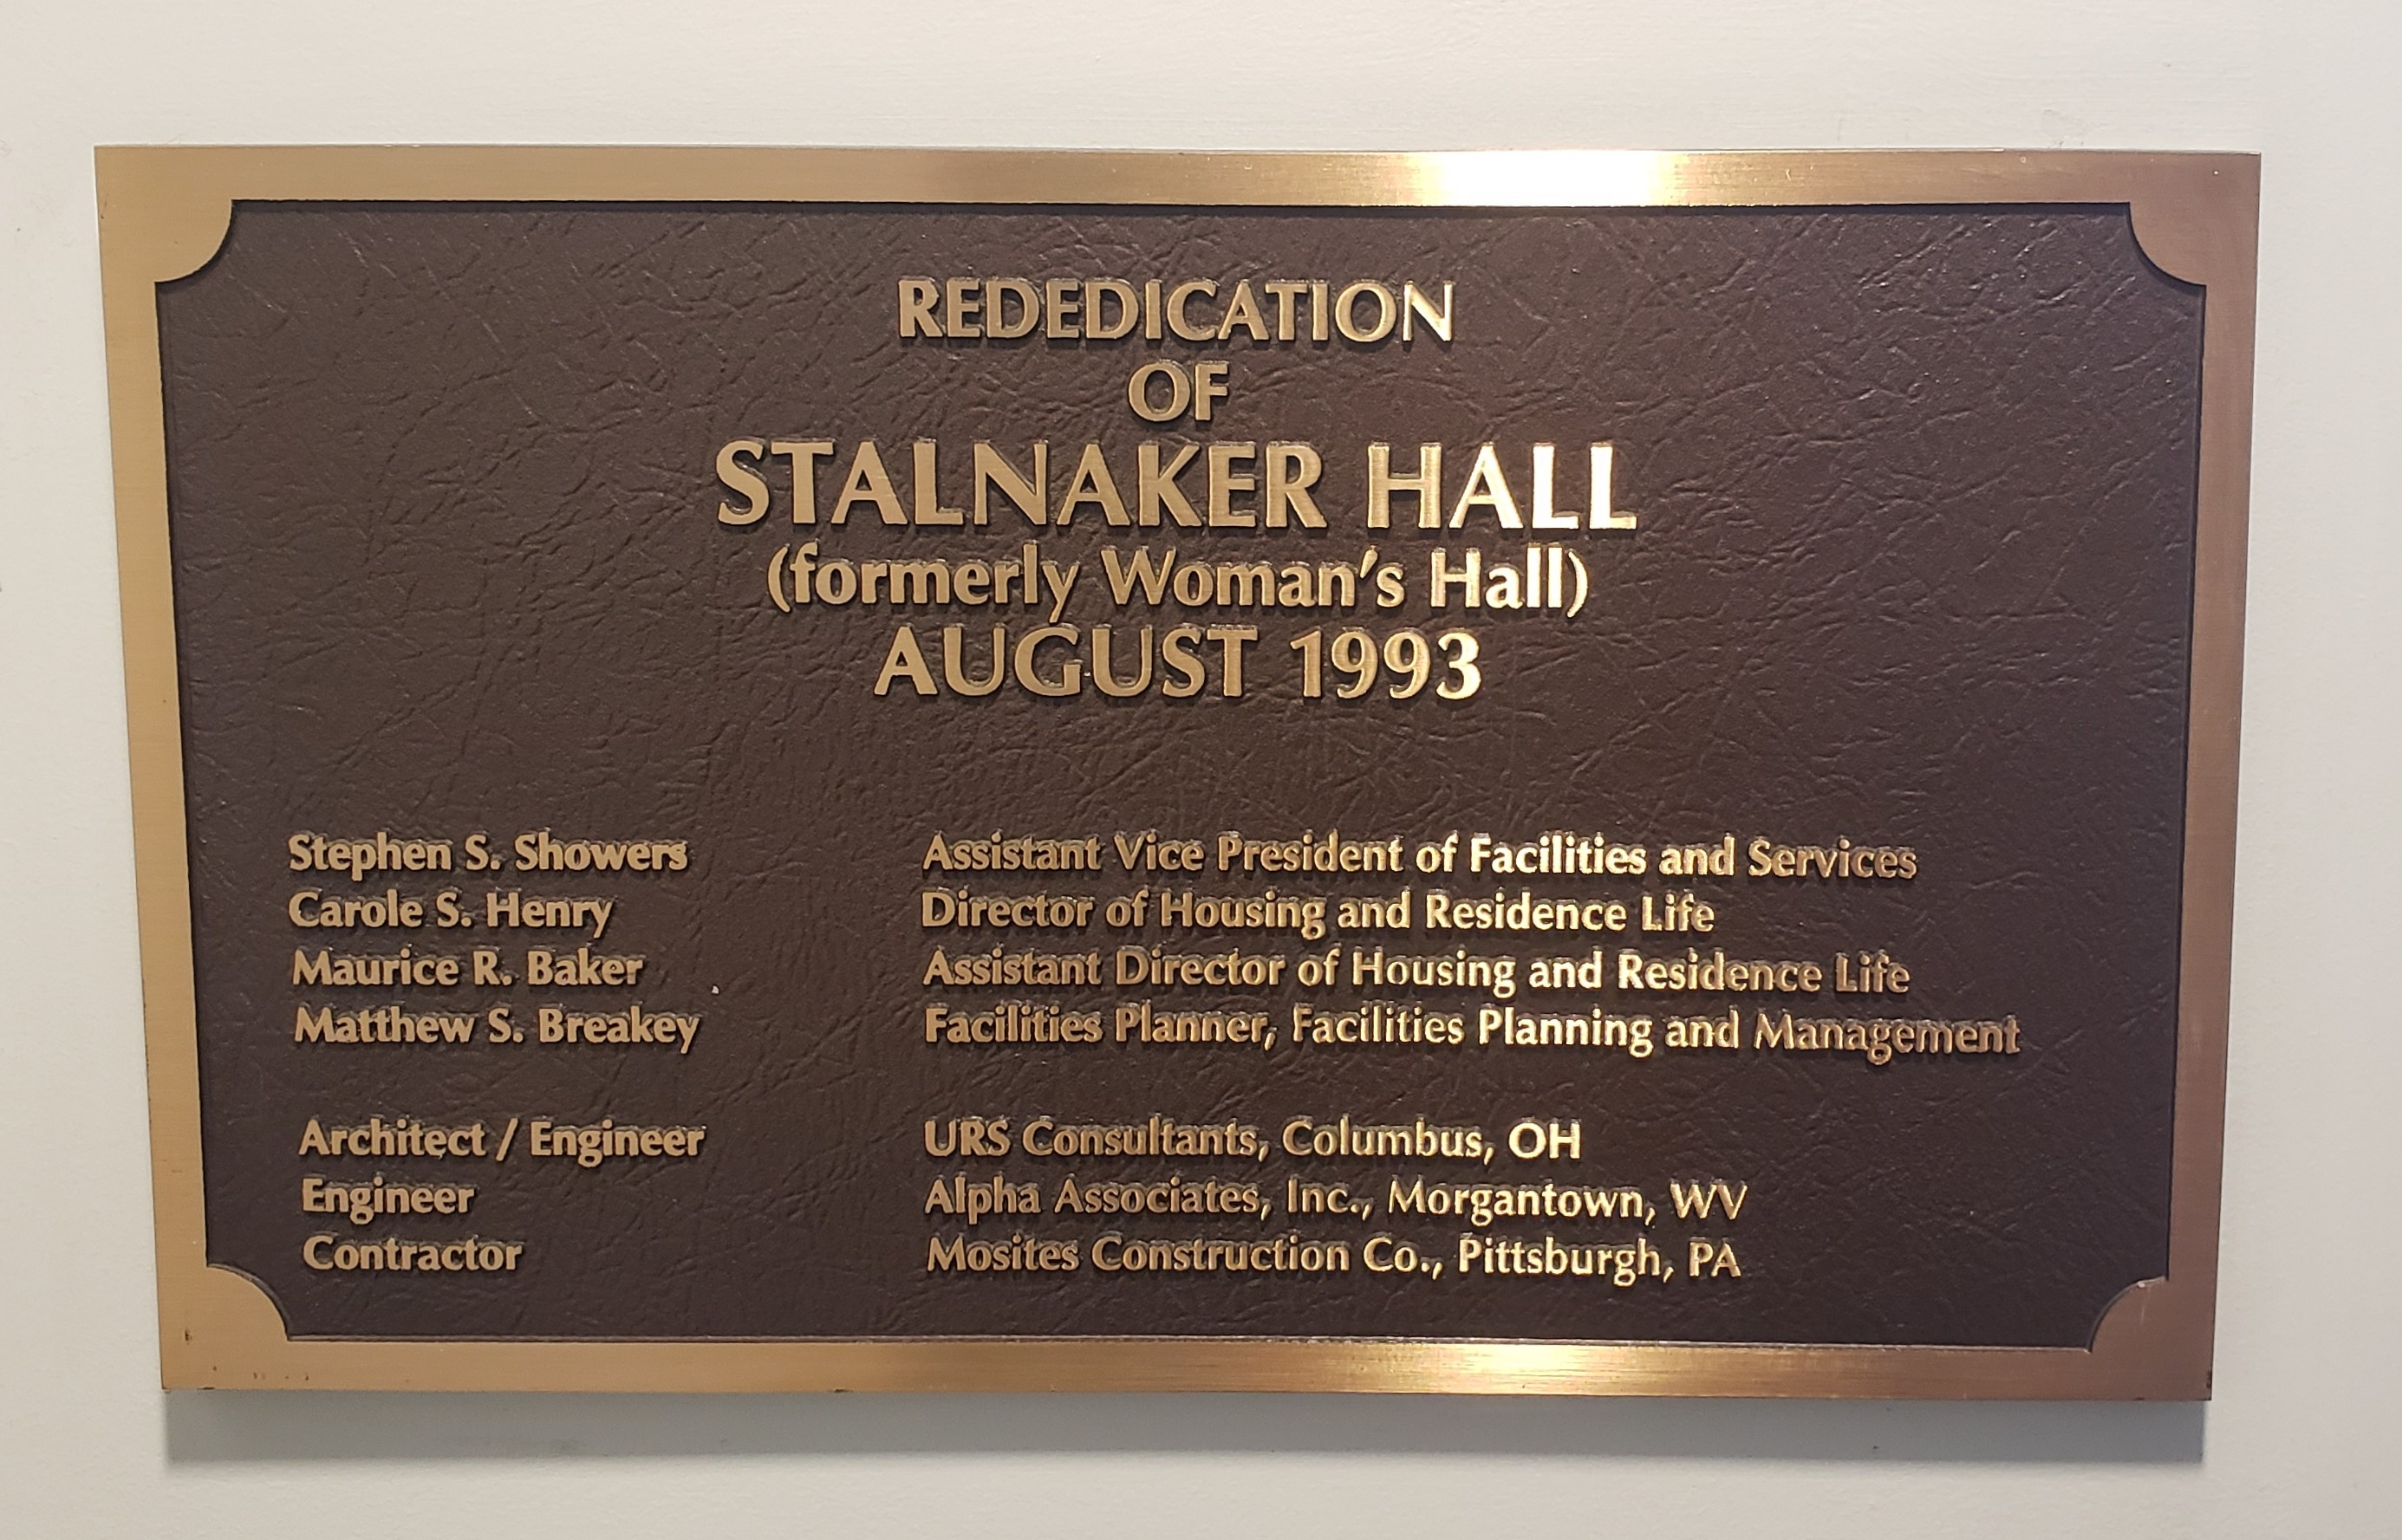 Stalnaker Hall Rededication Marker